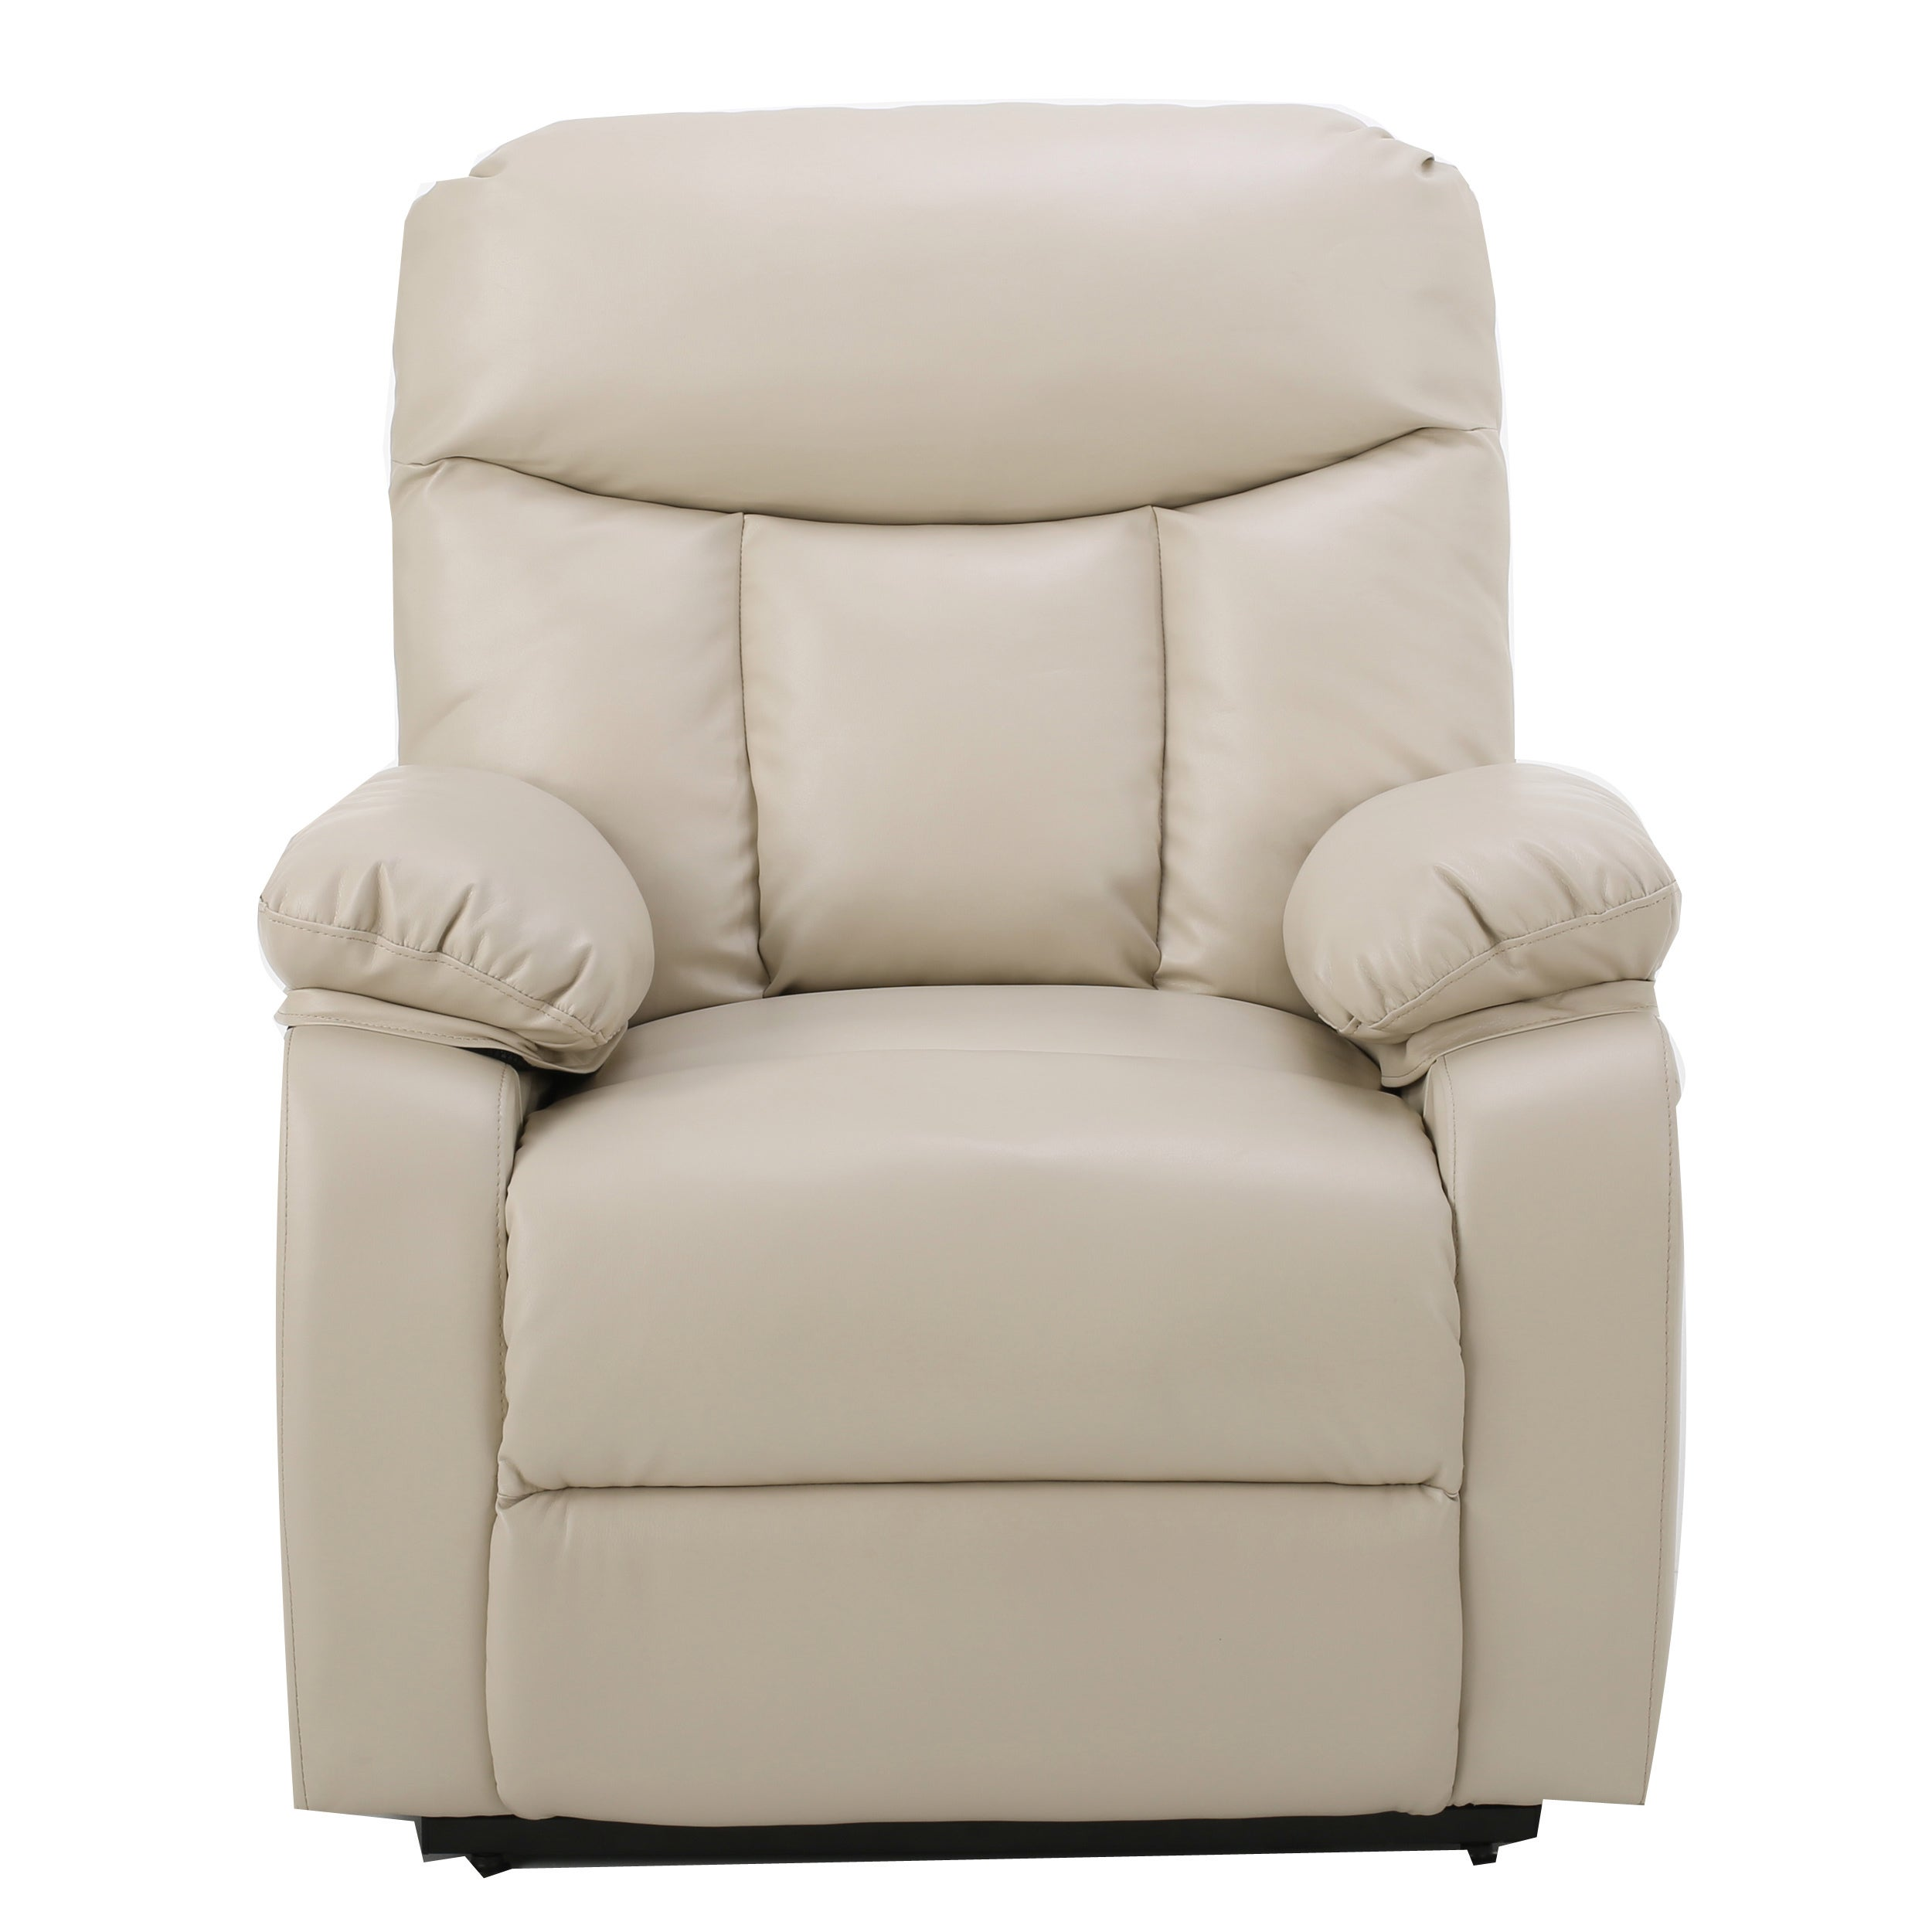 Quade Faux Leather Recliner Lift Club Chair By